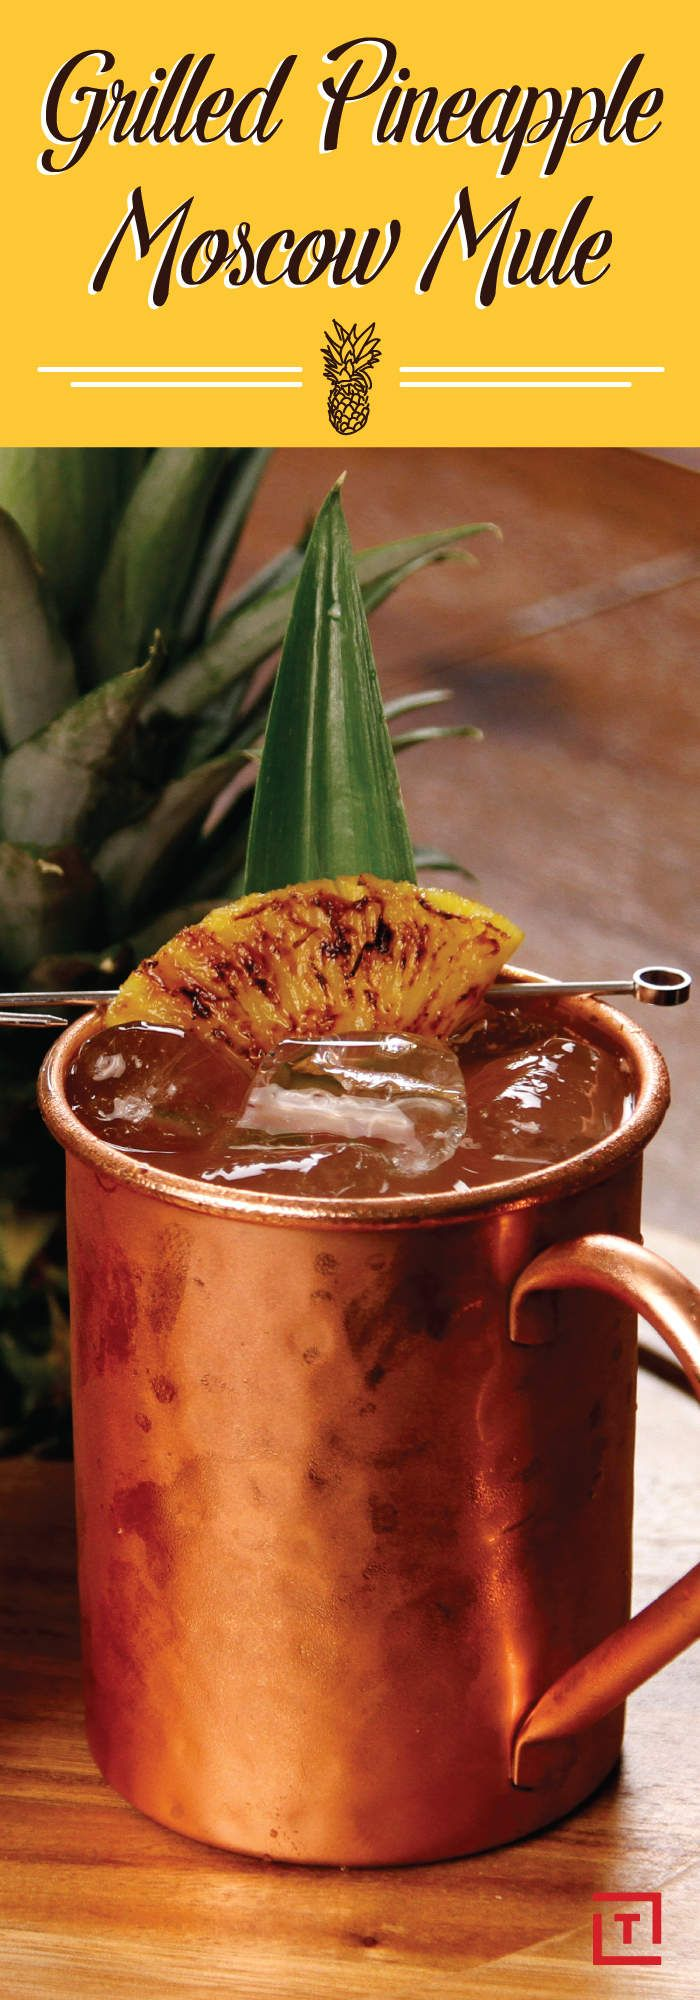 Here's How to Make a Pineapple Vodka Moscow Mule - Thrillist